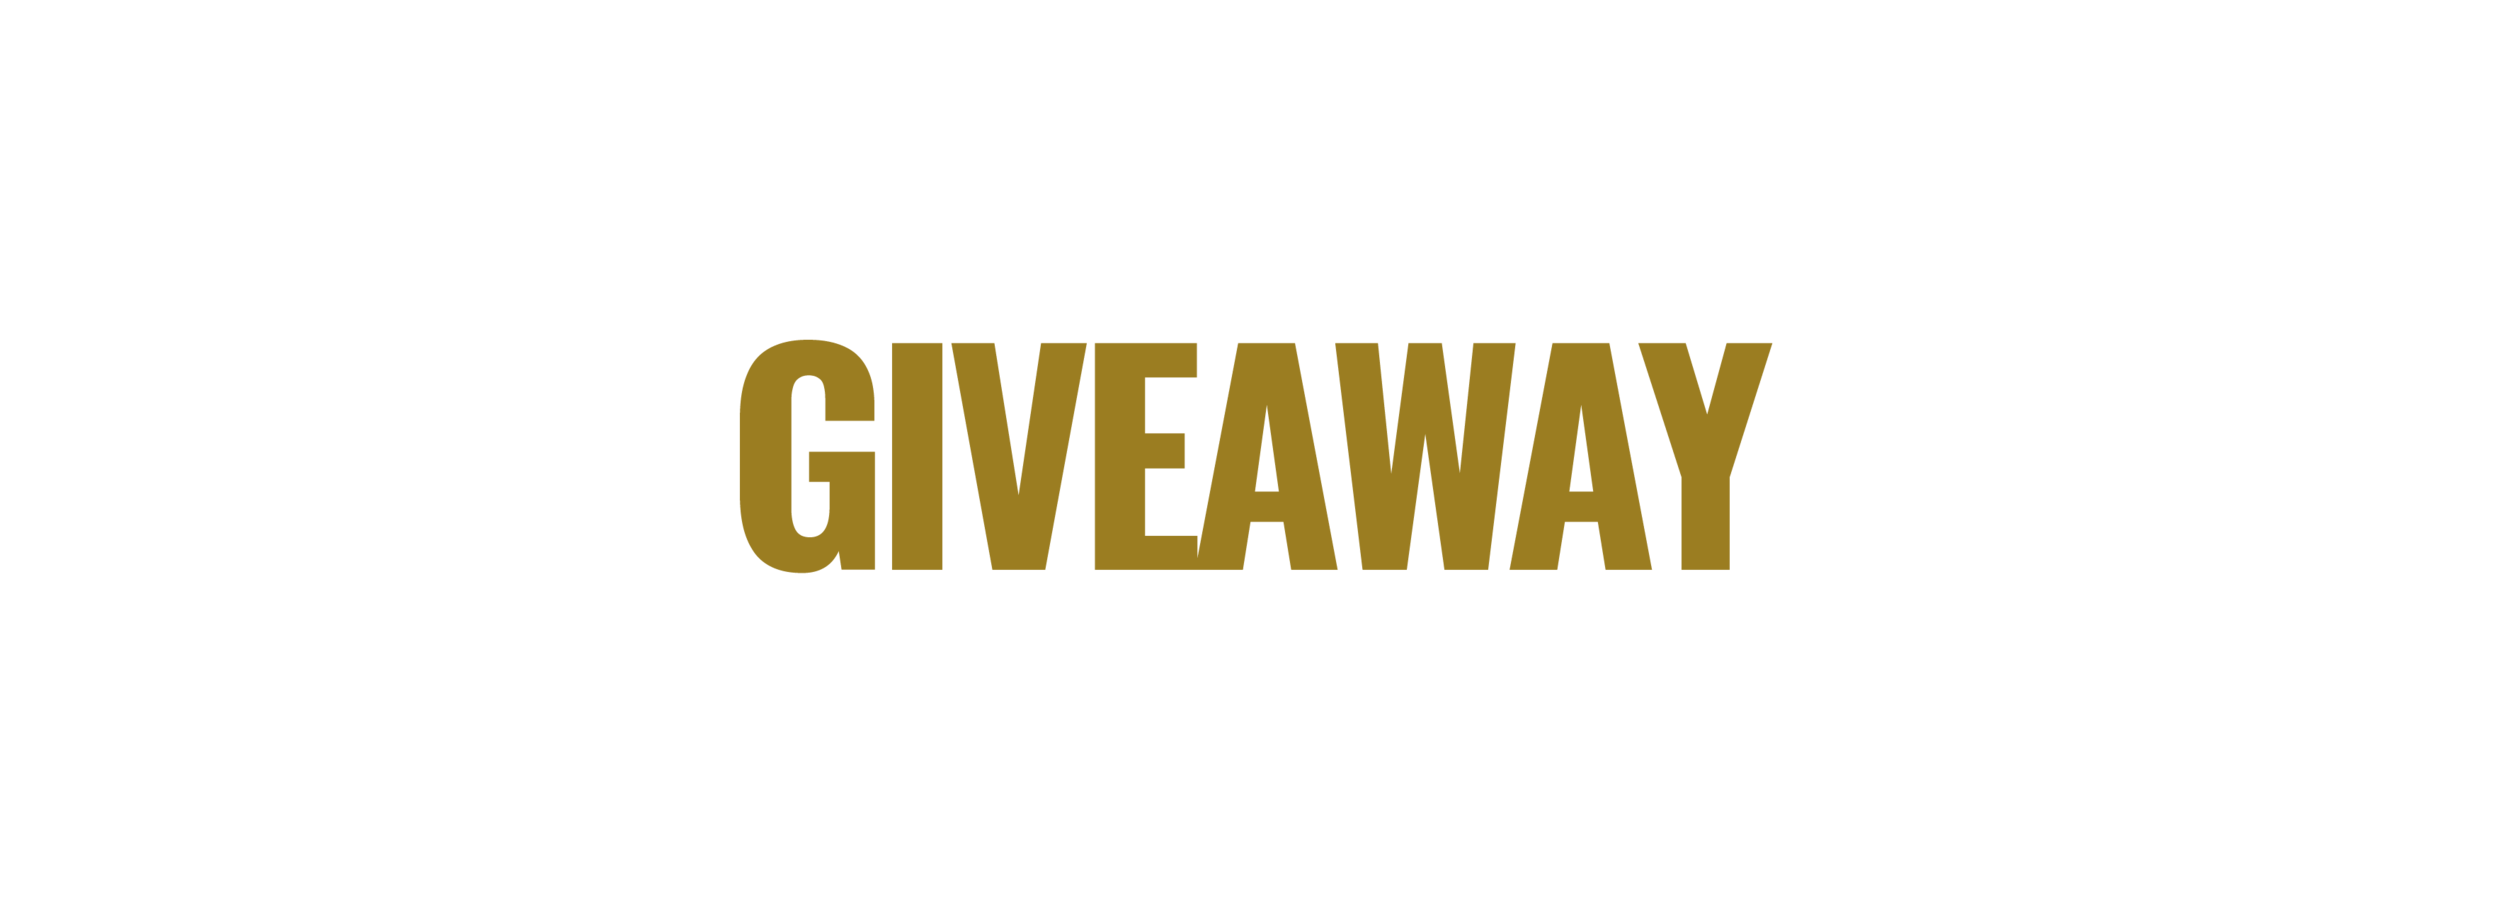 FB Bannernewsgiveaway.png